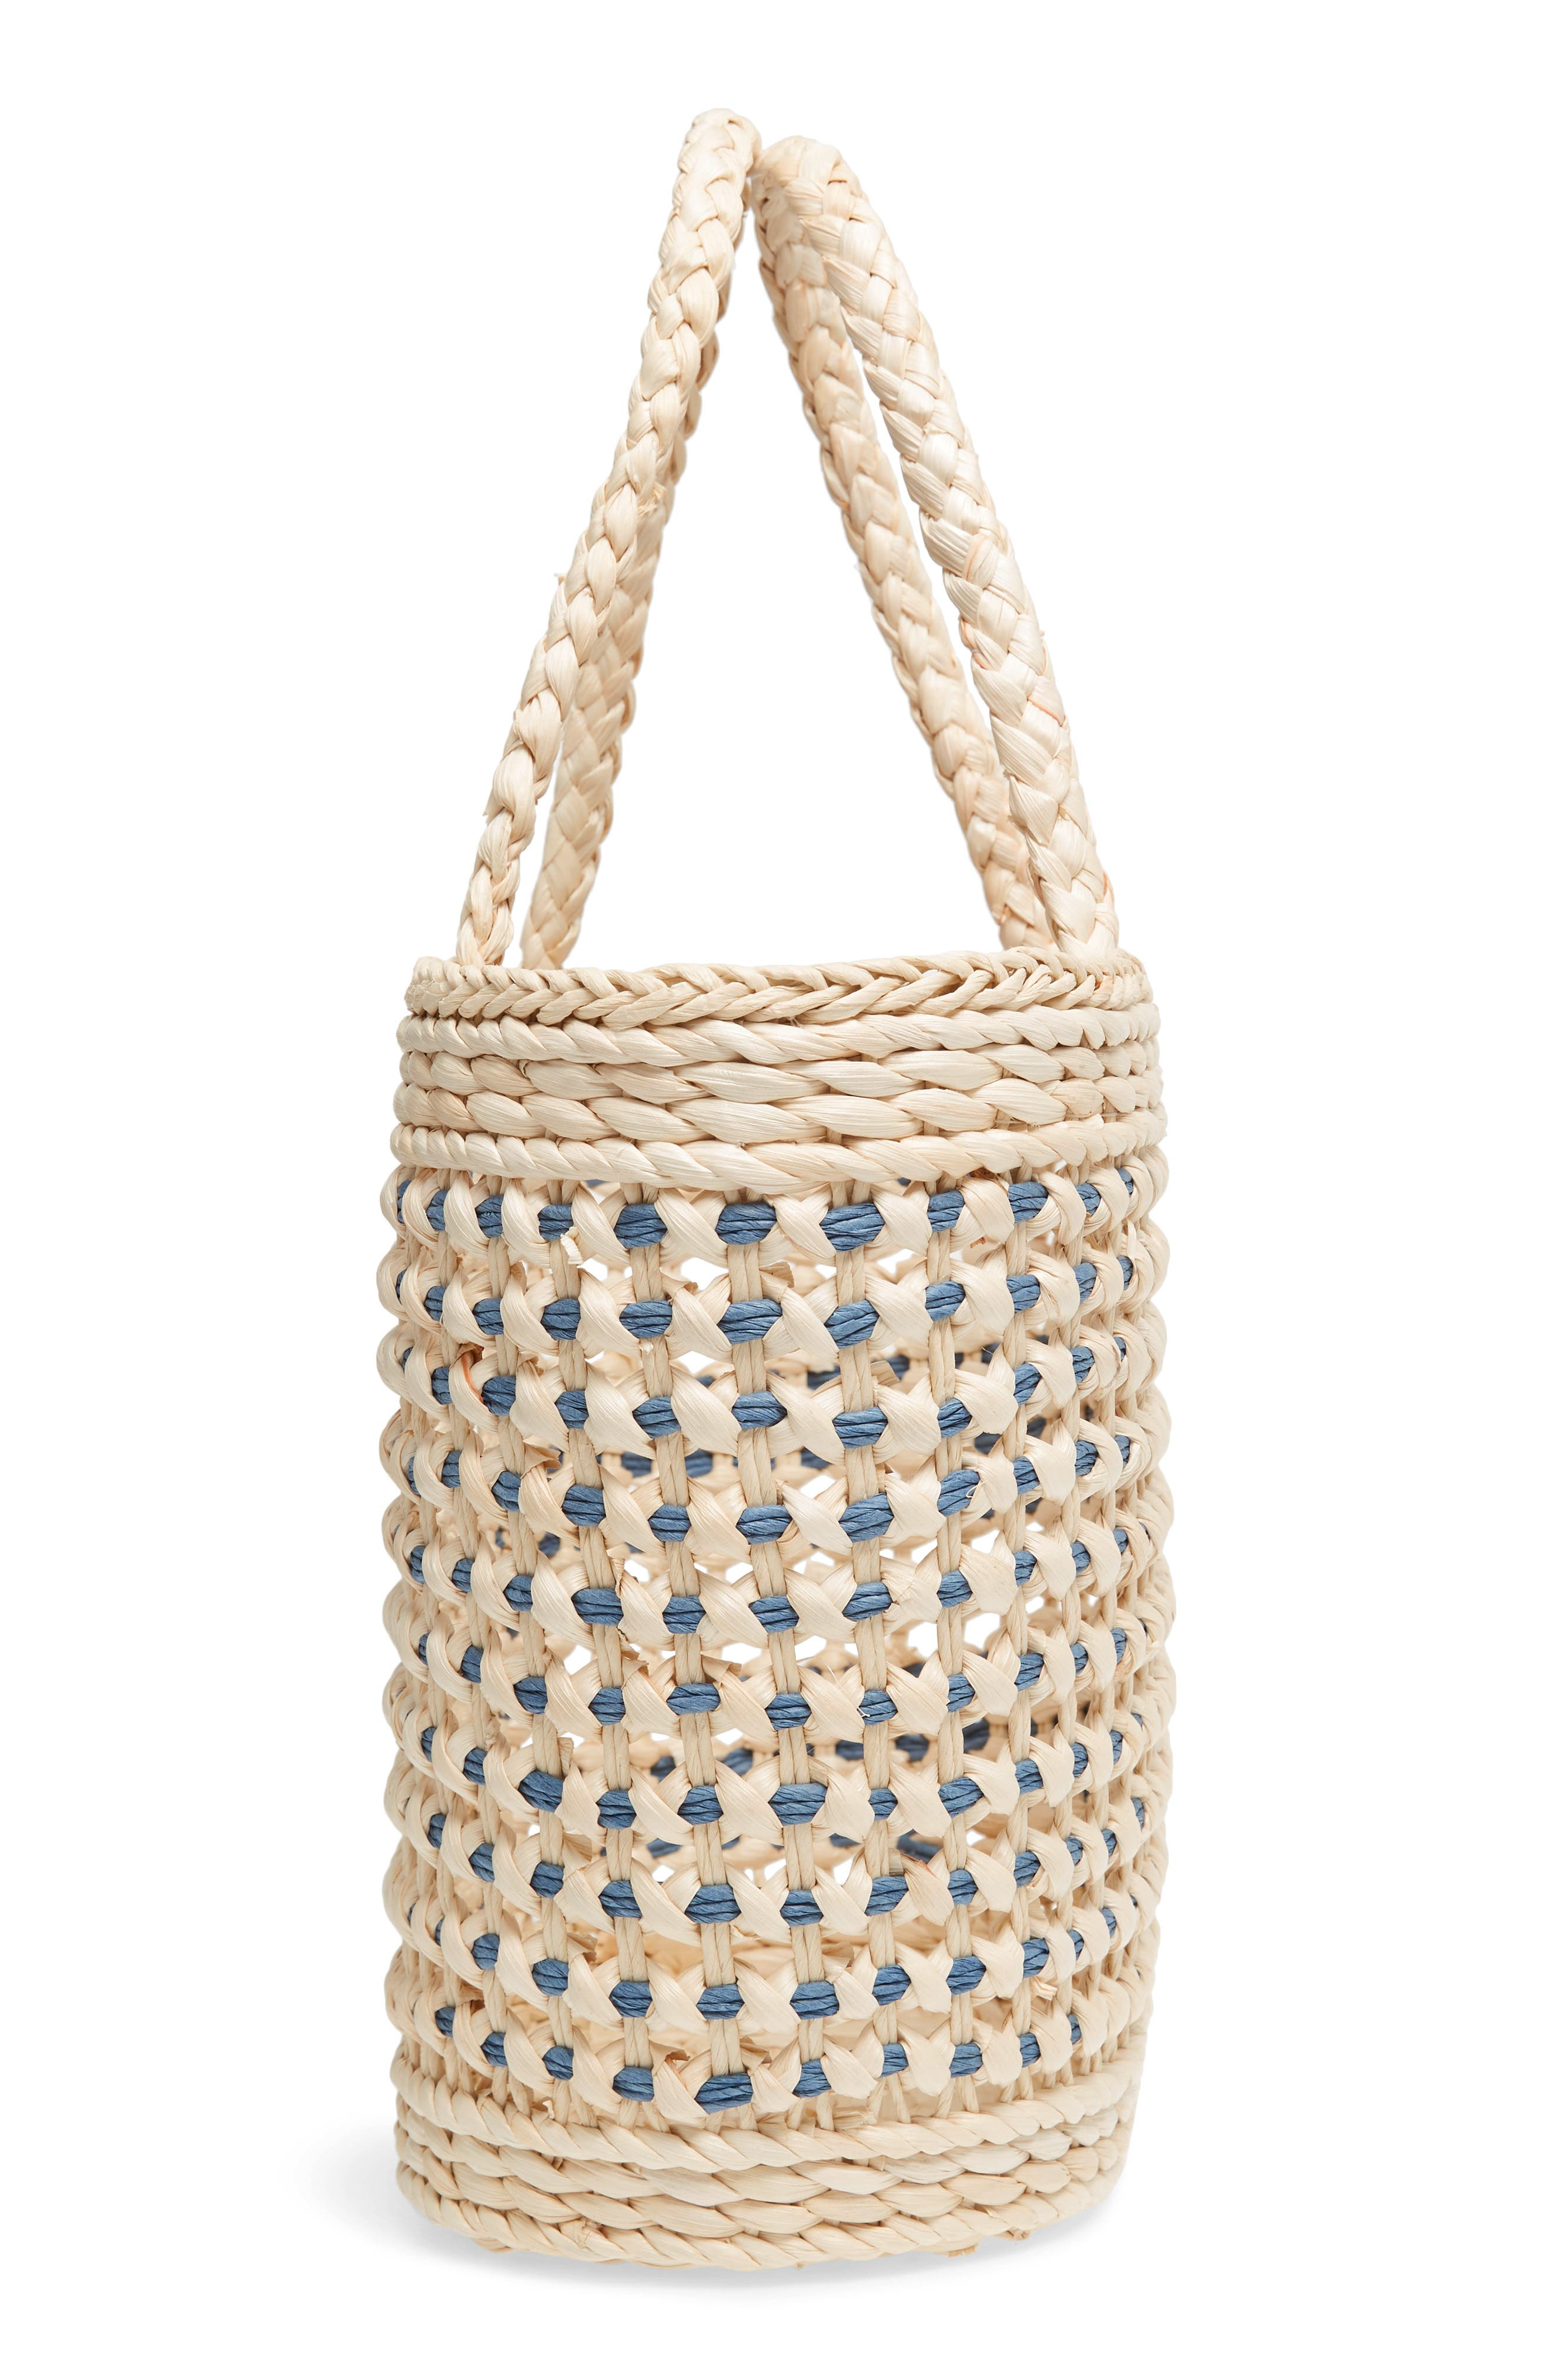 Woven Straw Tote,                             Alternate thumbnail 4, color,                             Nautral/Blue